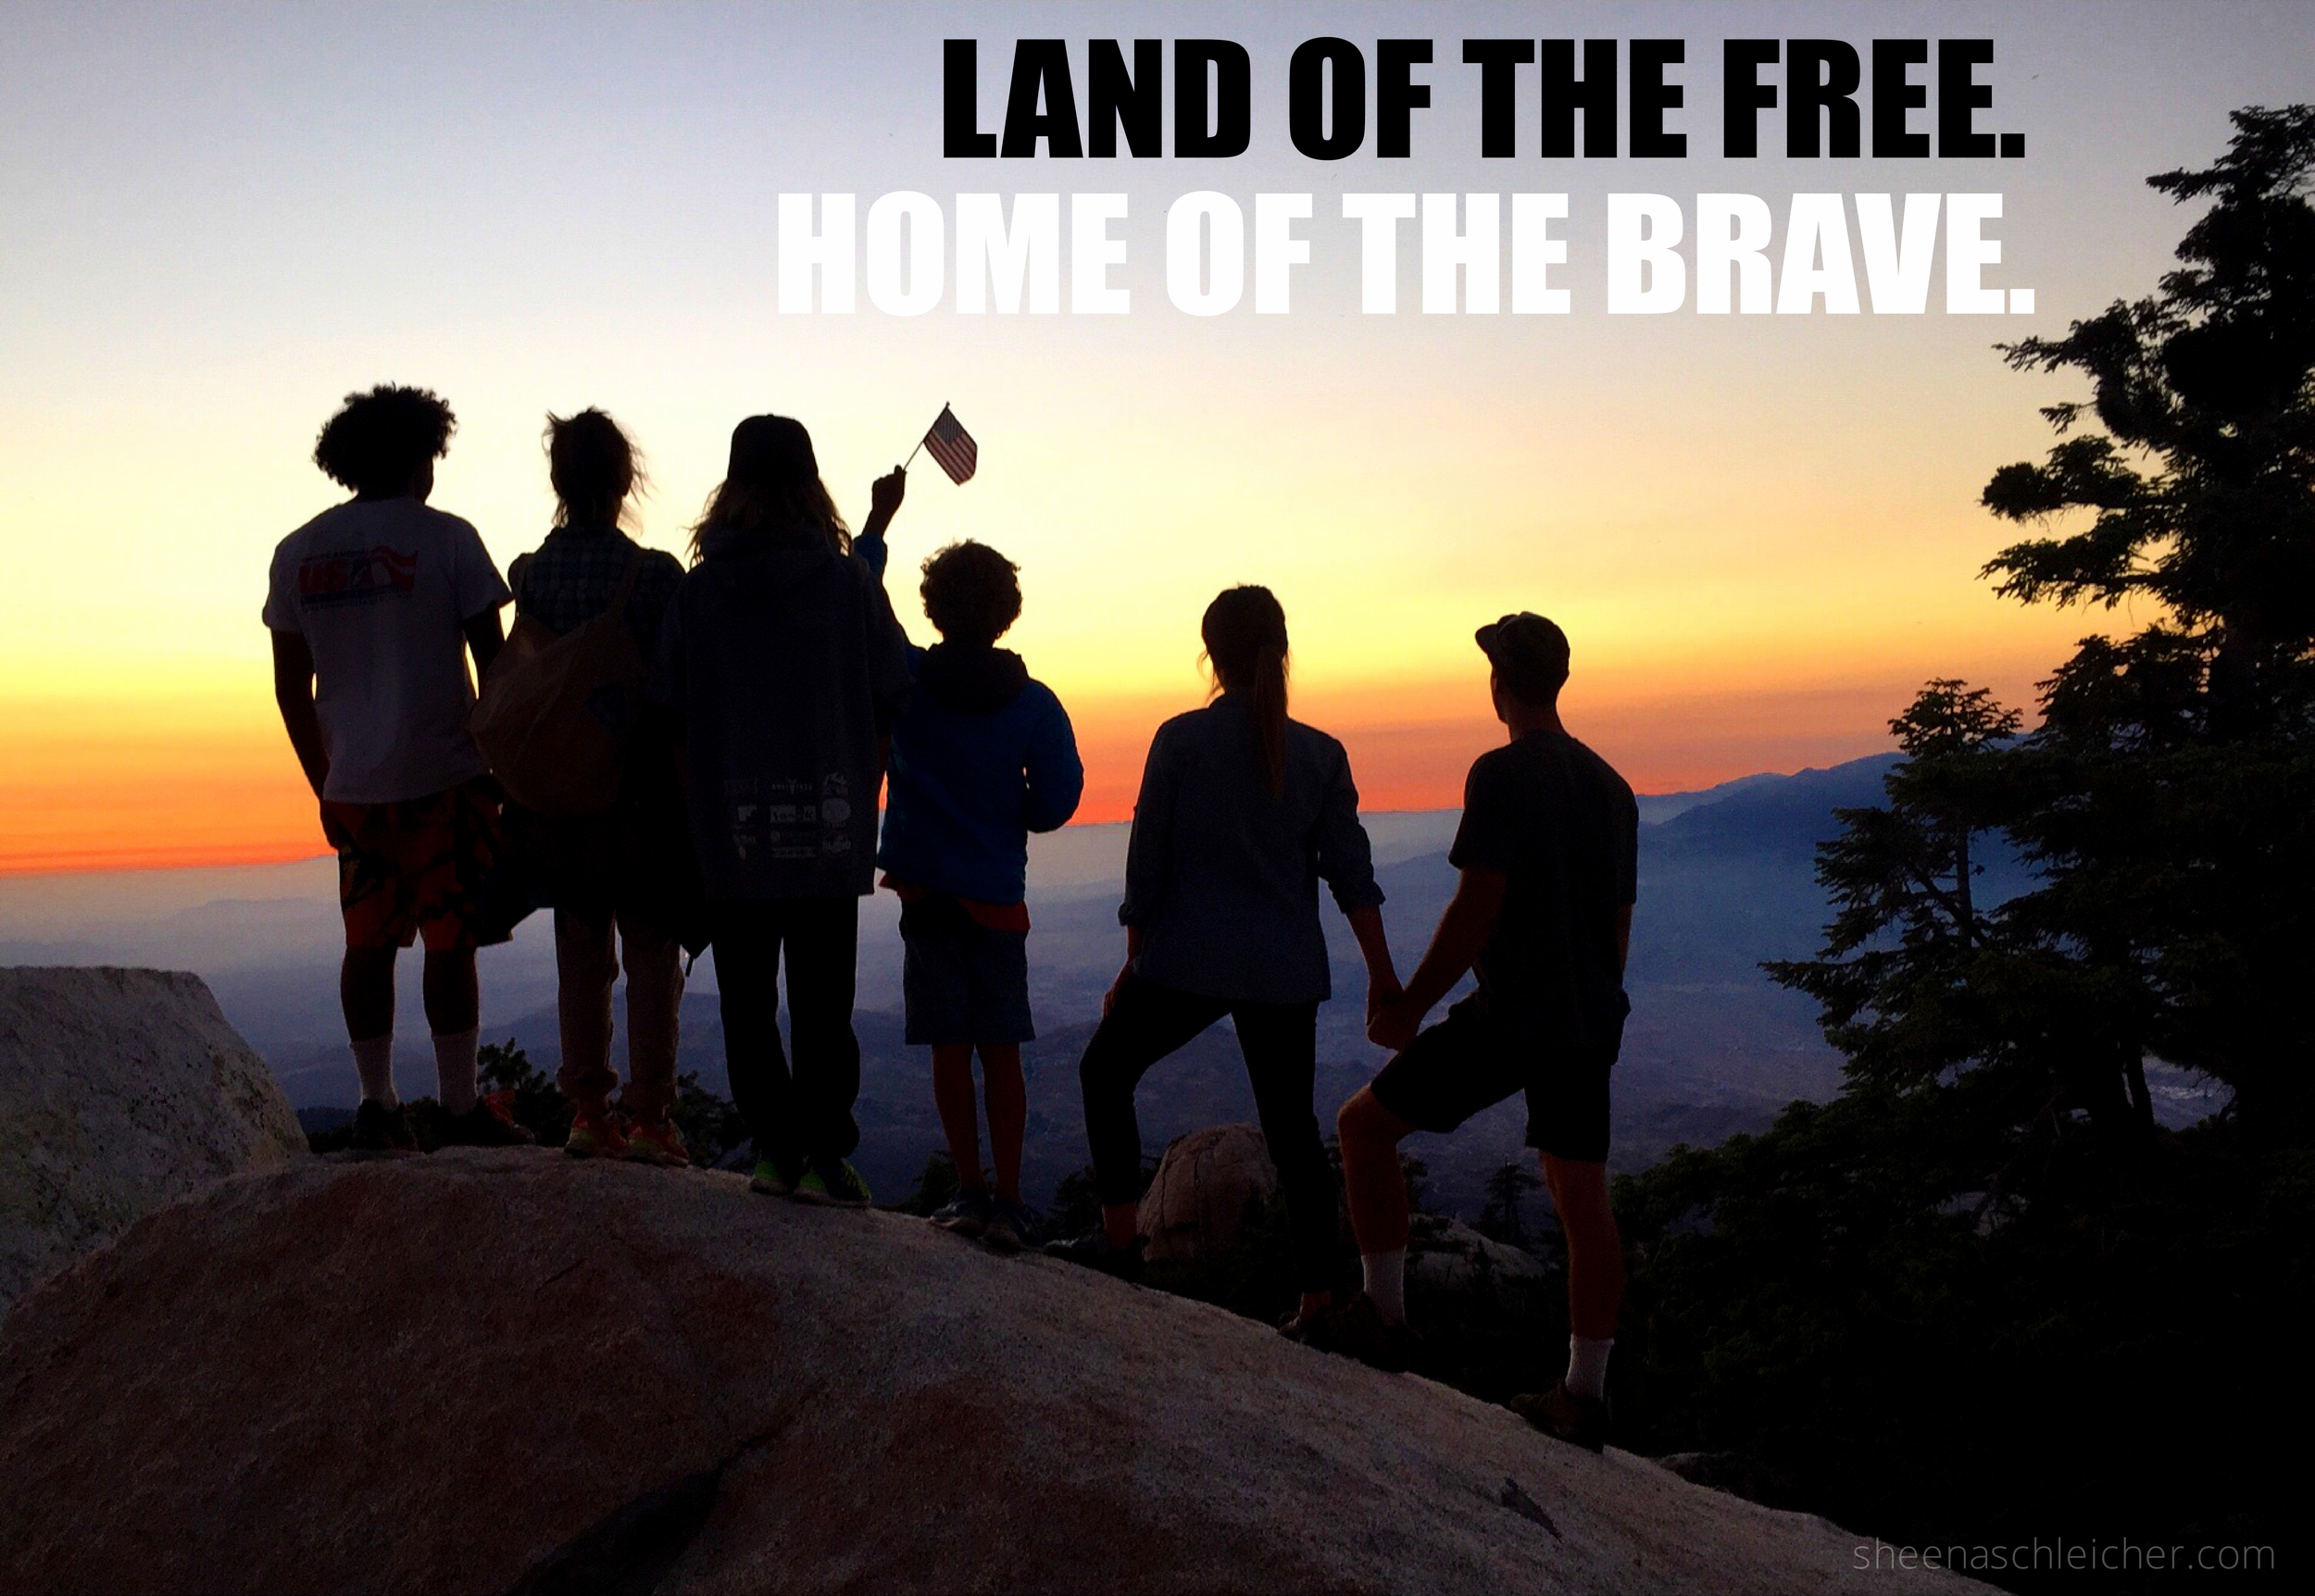 Land of the Free. Home of the Brave. Happy 4th of July!